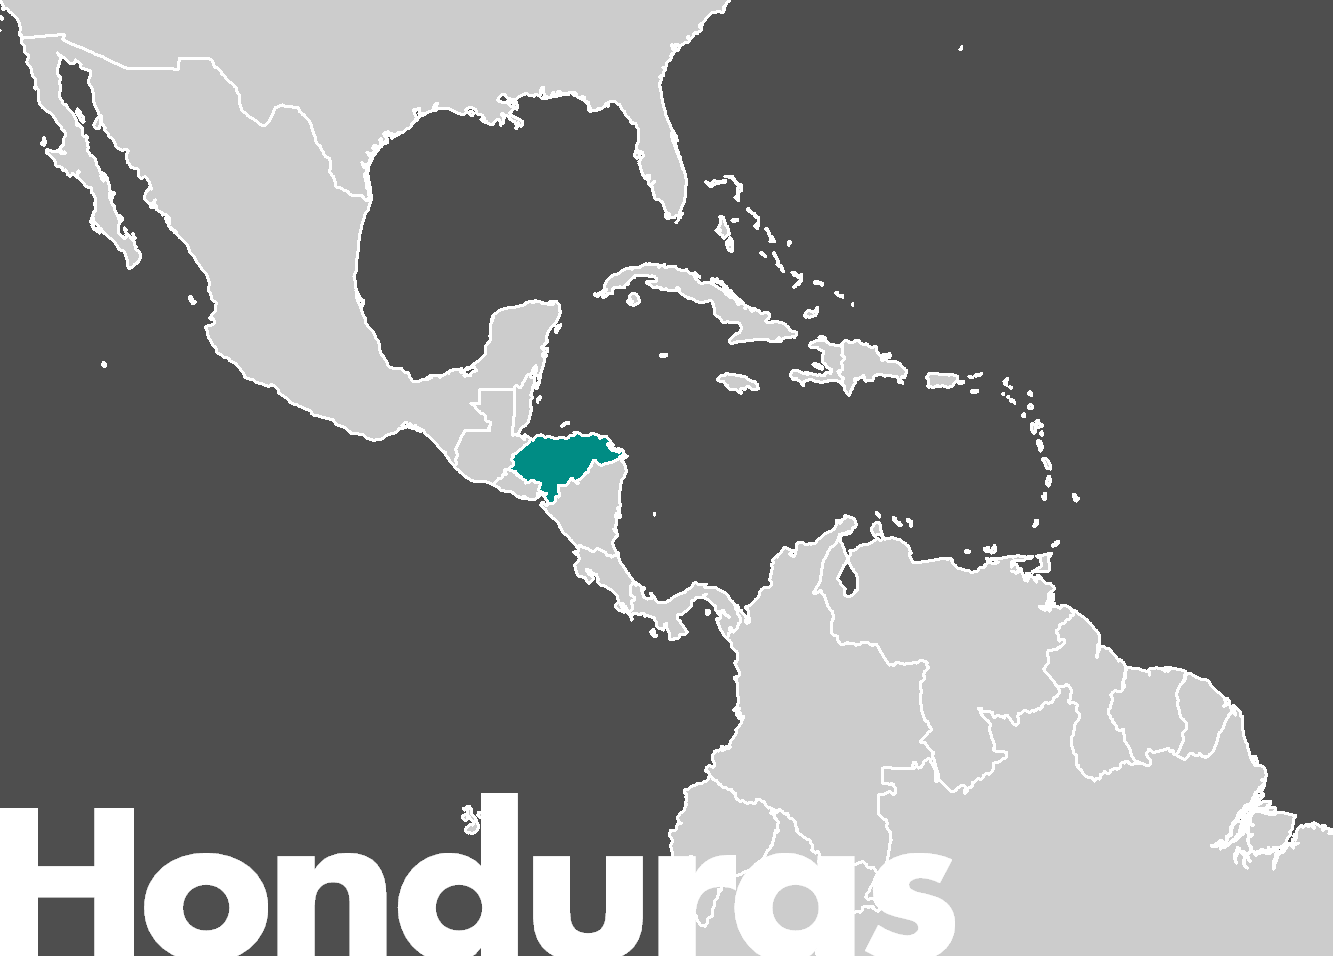 an analysis of honduras in central america Read our honduras guide to get to know the history, logistics, highlights, weather , and culture of this central american country.